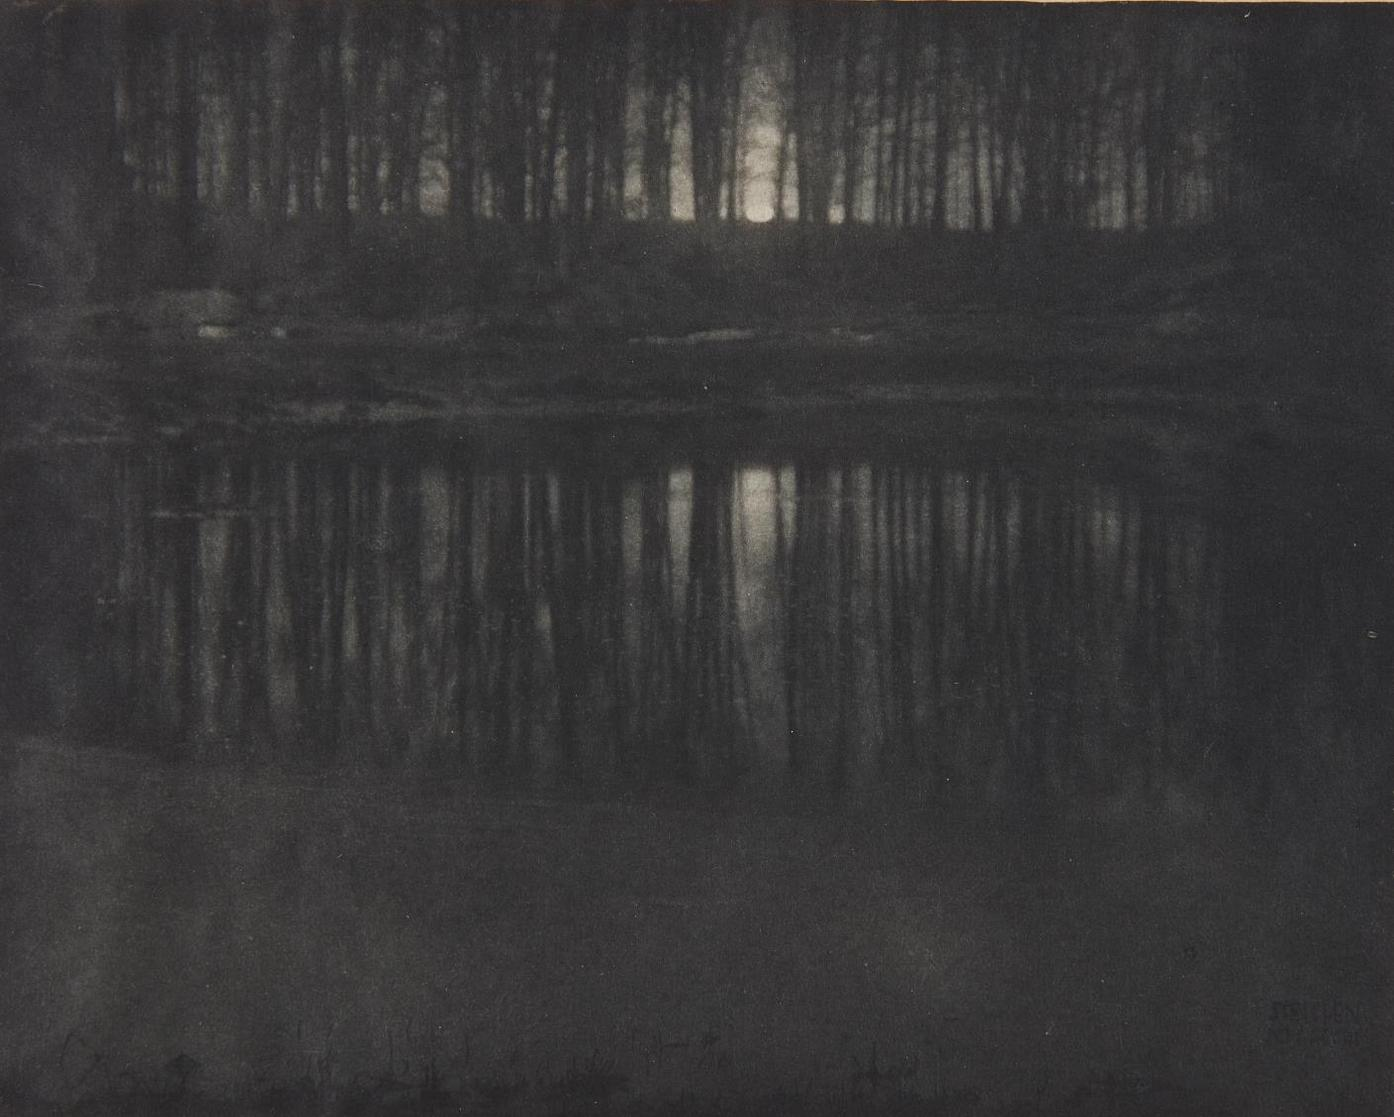 Edward Steichen-Moonlight: The Pond-1904